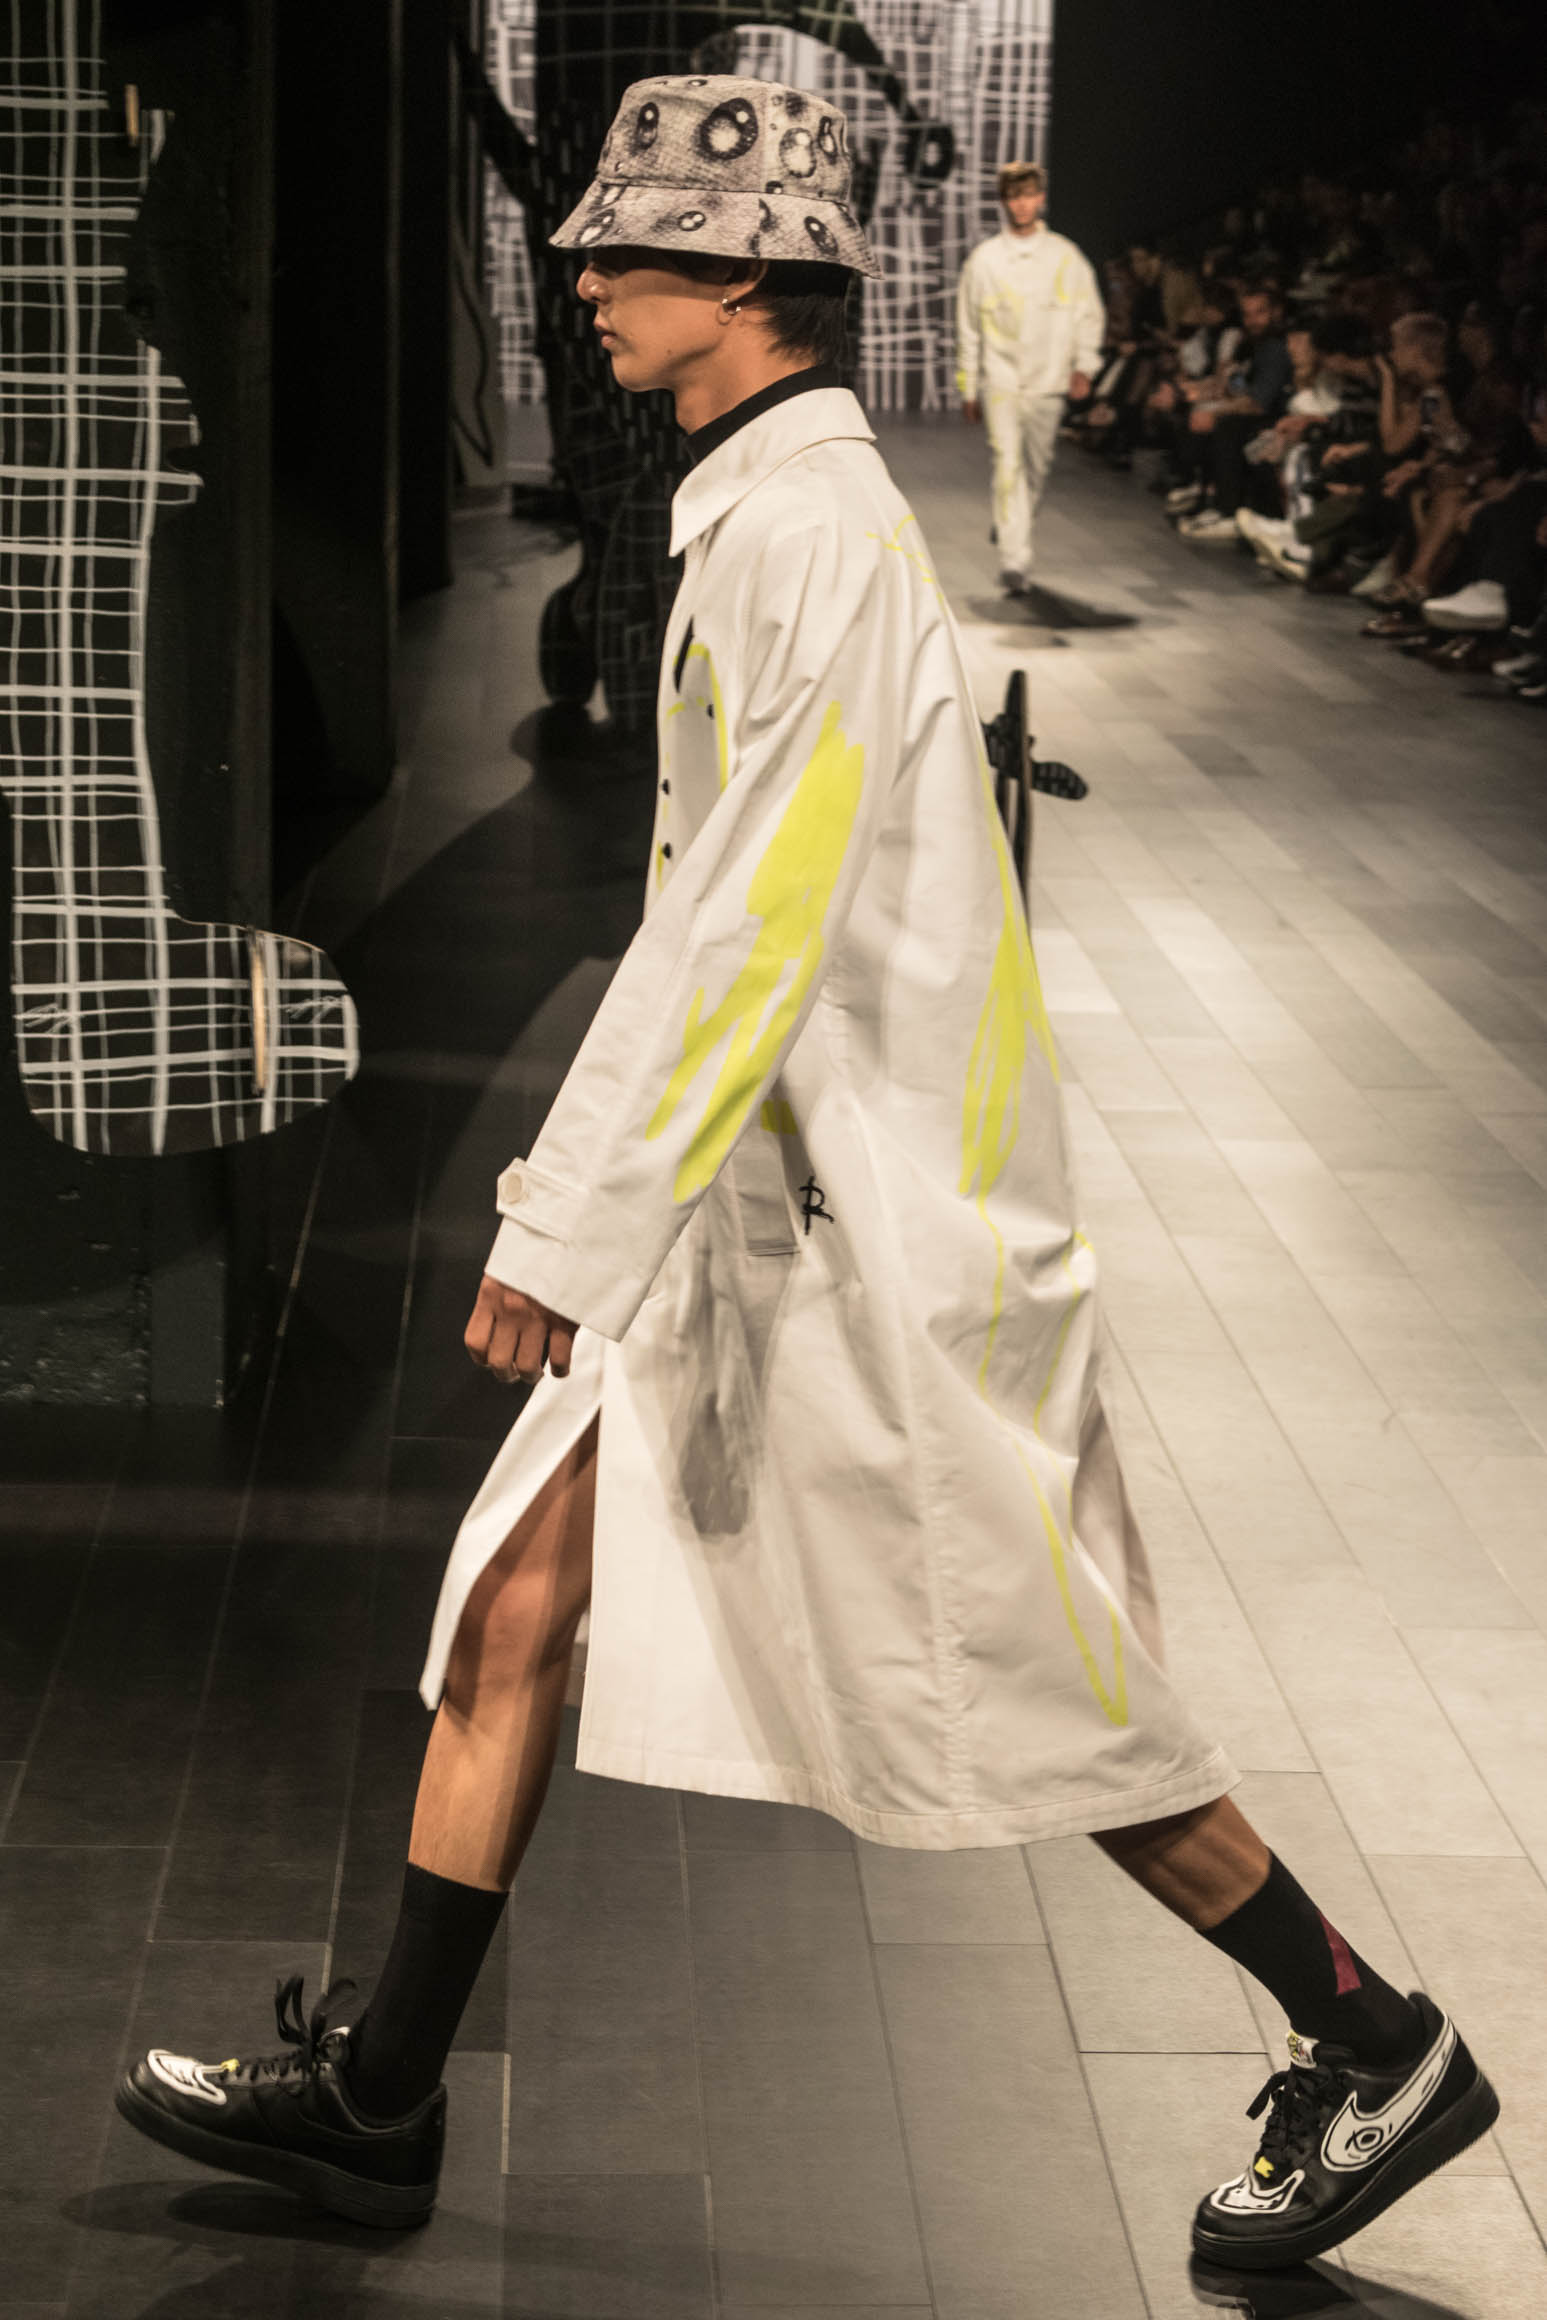 12 Rochambeau SS18 Runway Show - New York Fashion Week 2017 - FilterGrade Blog